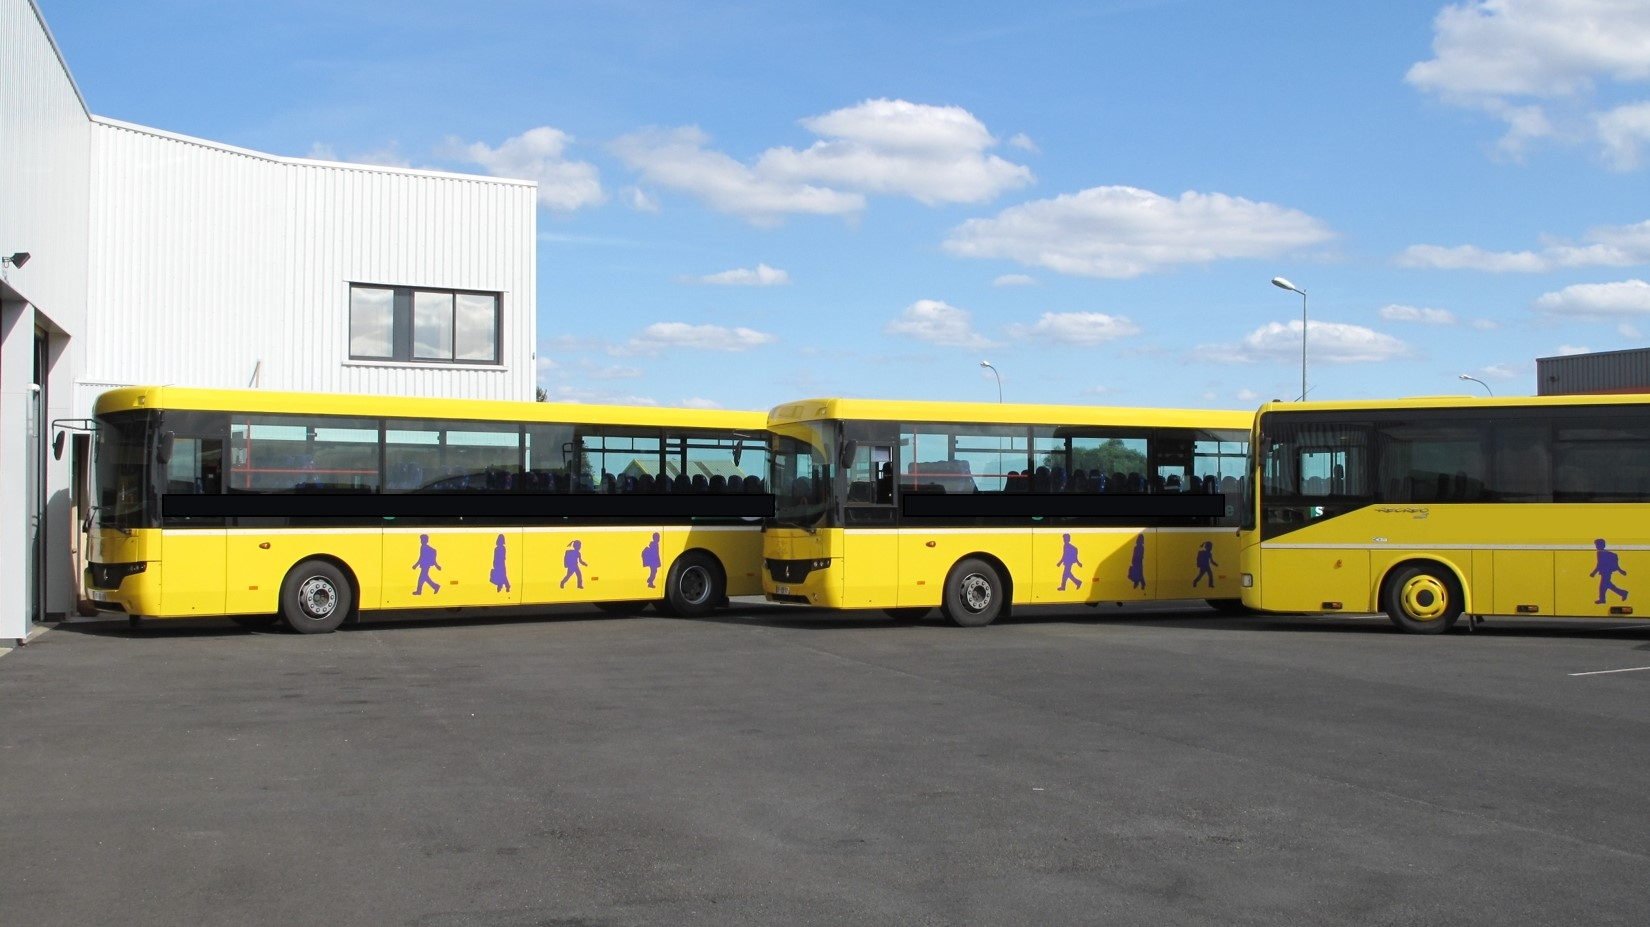 voyages-Mauger-Transport-scolaire-3